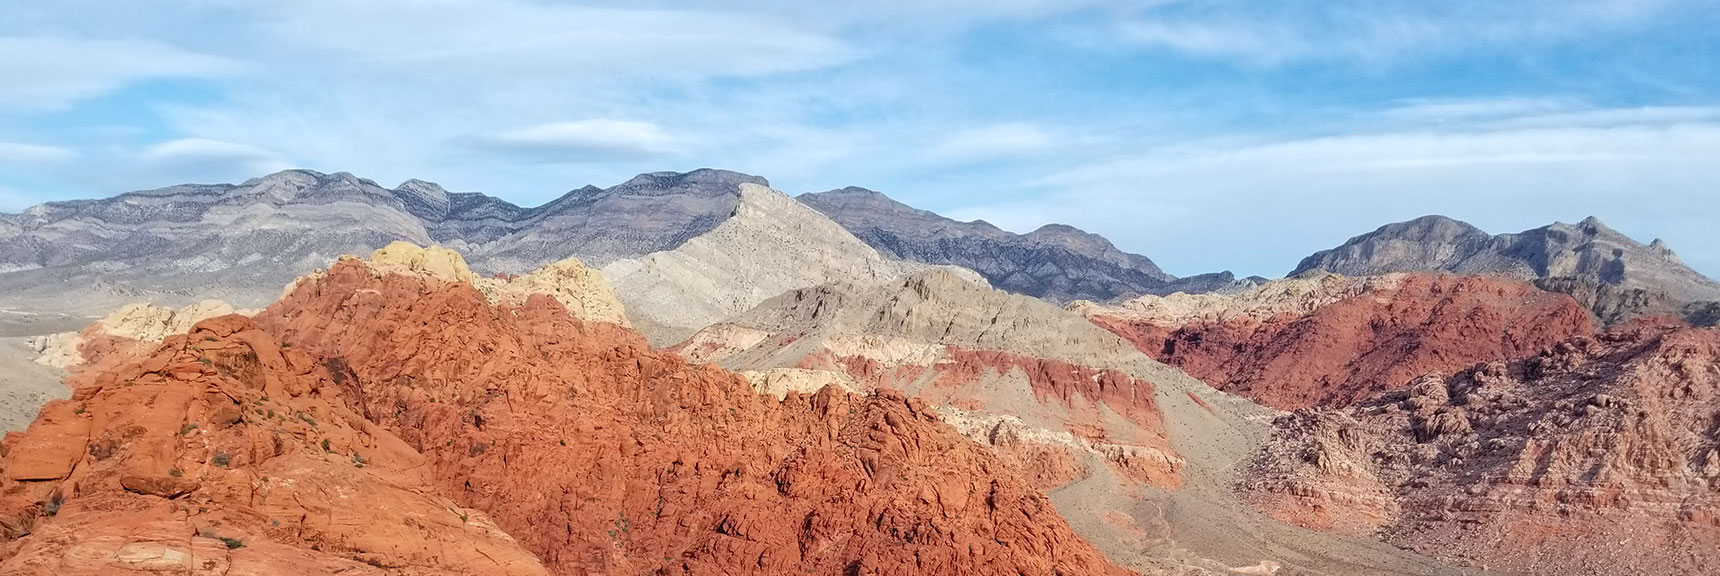 View Toward Turtlehead Peak and LaMadre Mountain from the Summit of Calico Hills In Red Rock National Park, Nevada